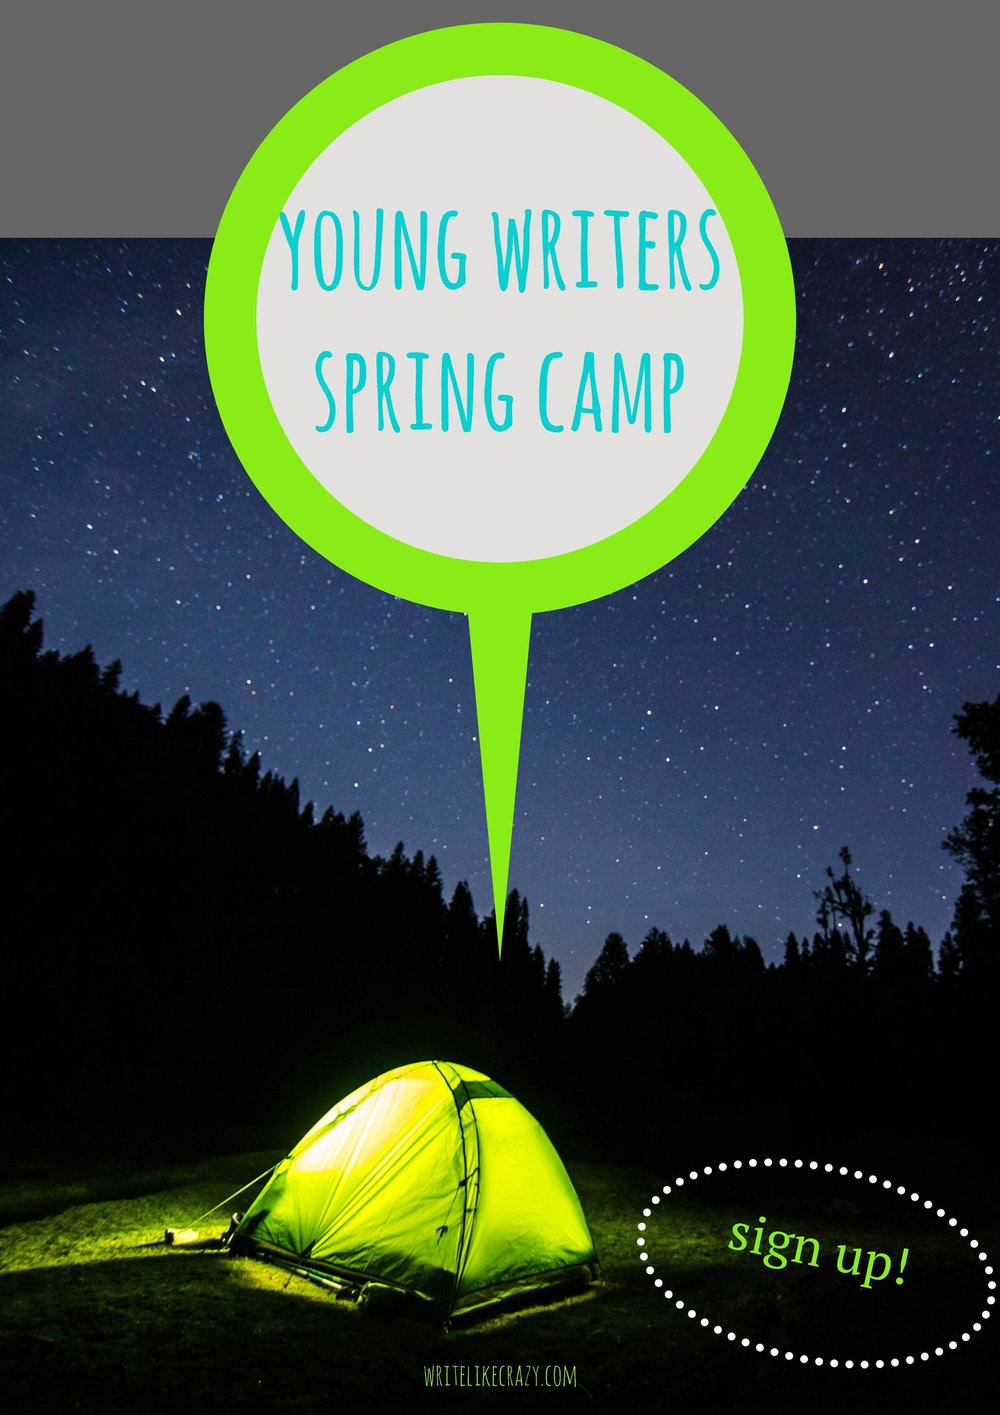 young writers spring camp logo -1-.jpg